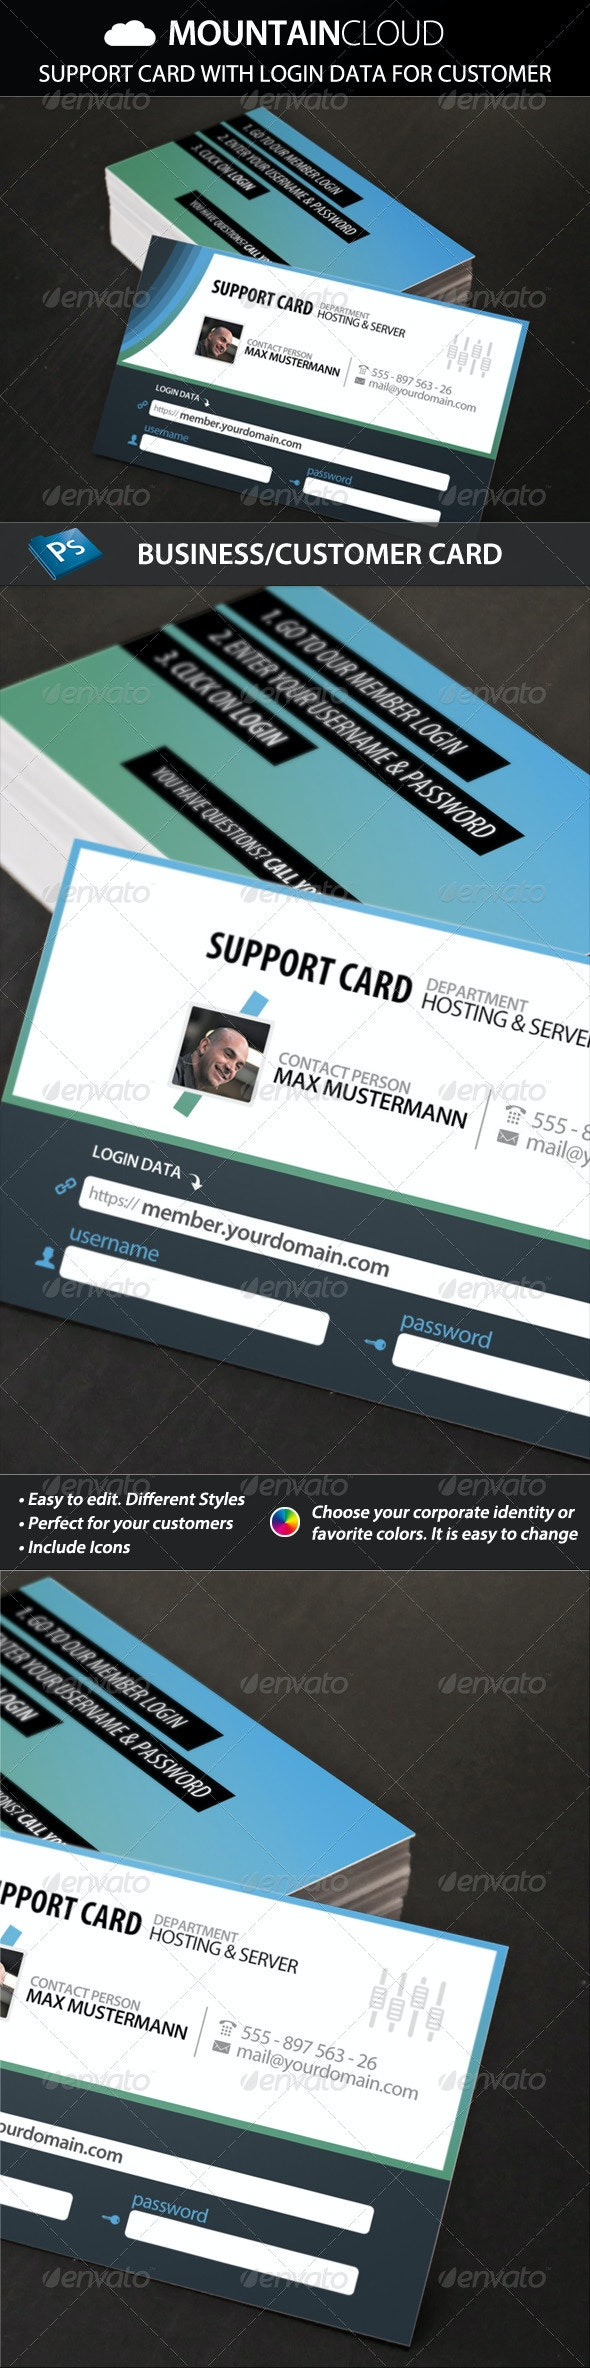 Mountain Cloud -Support & Customer Card with Login - Corporate Business Cards